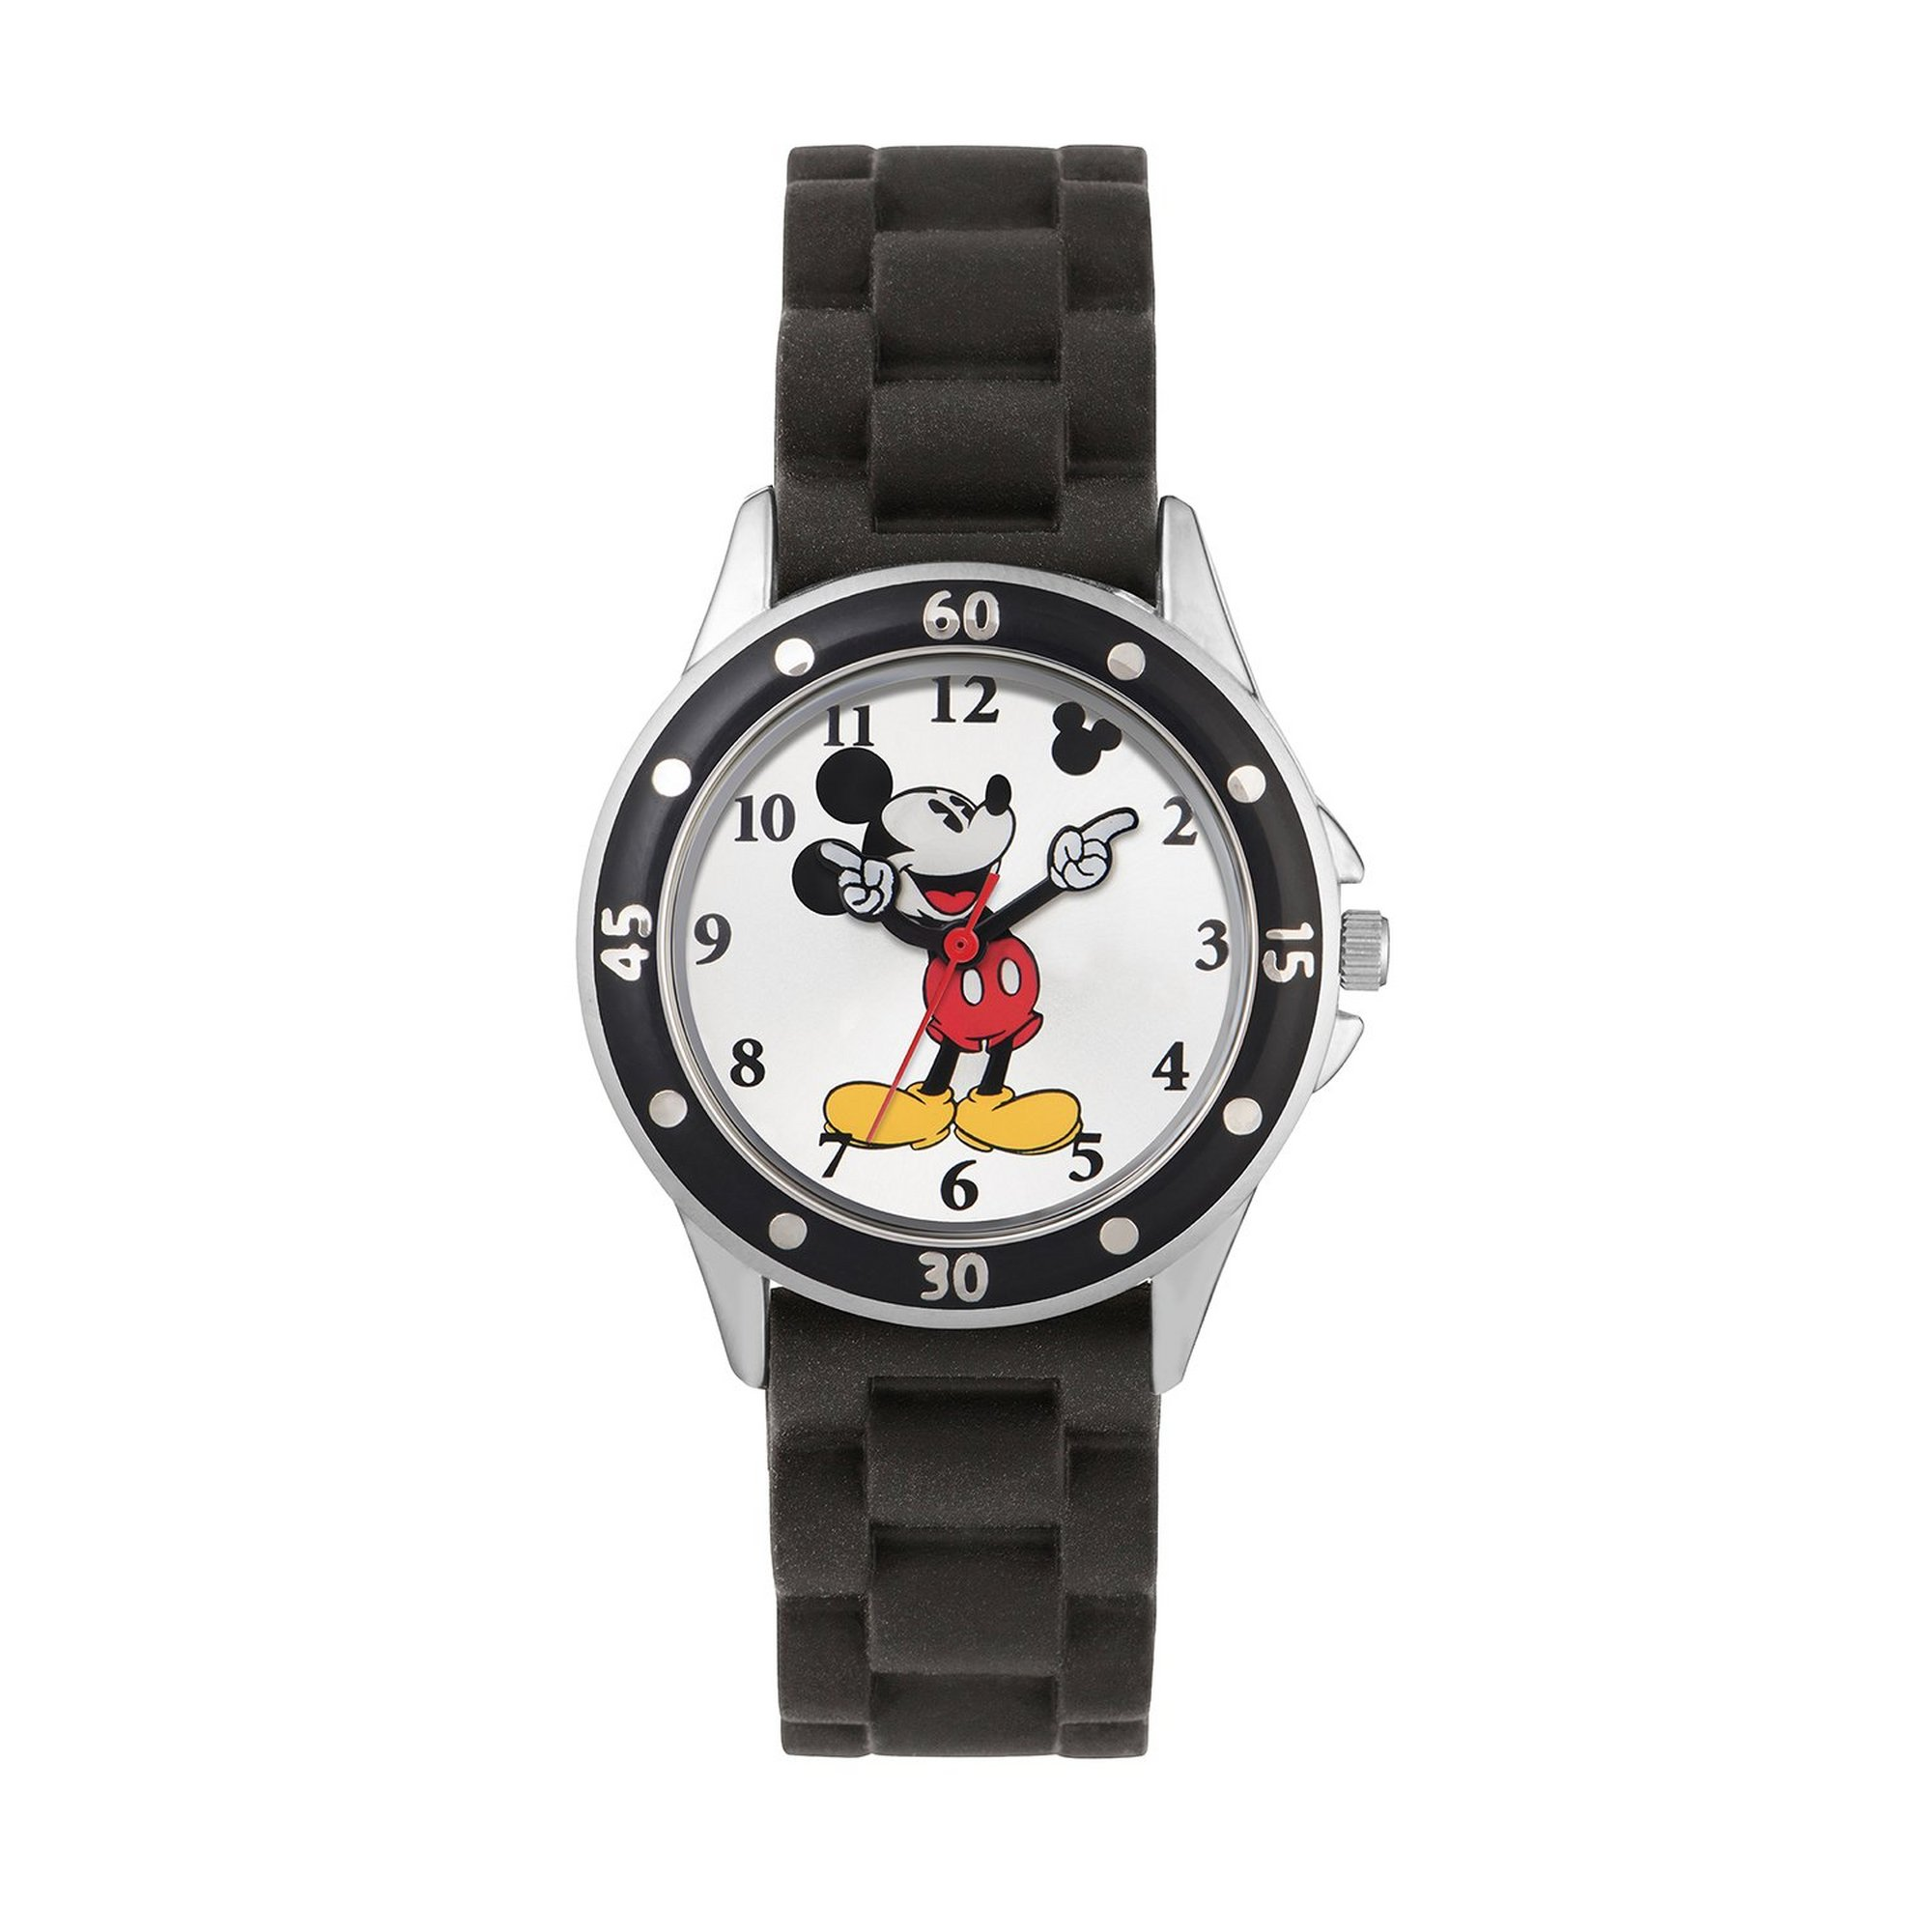 Image of Disney Mickey Mouse Black Silicone Strap Watch